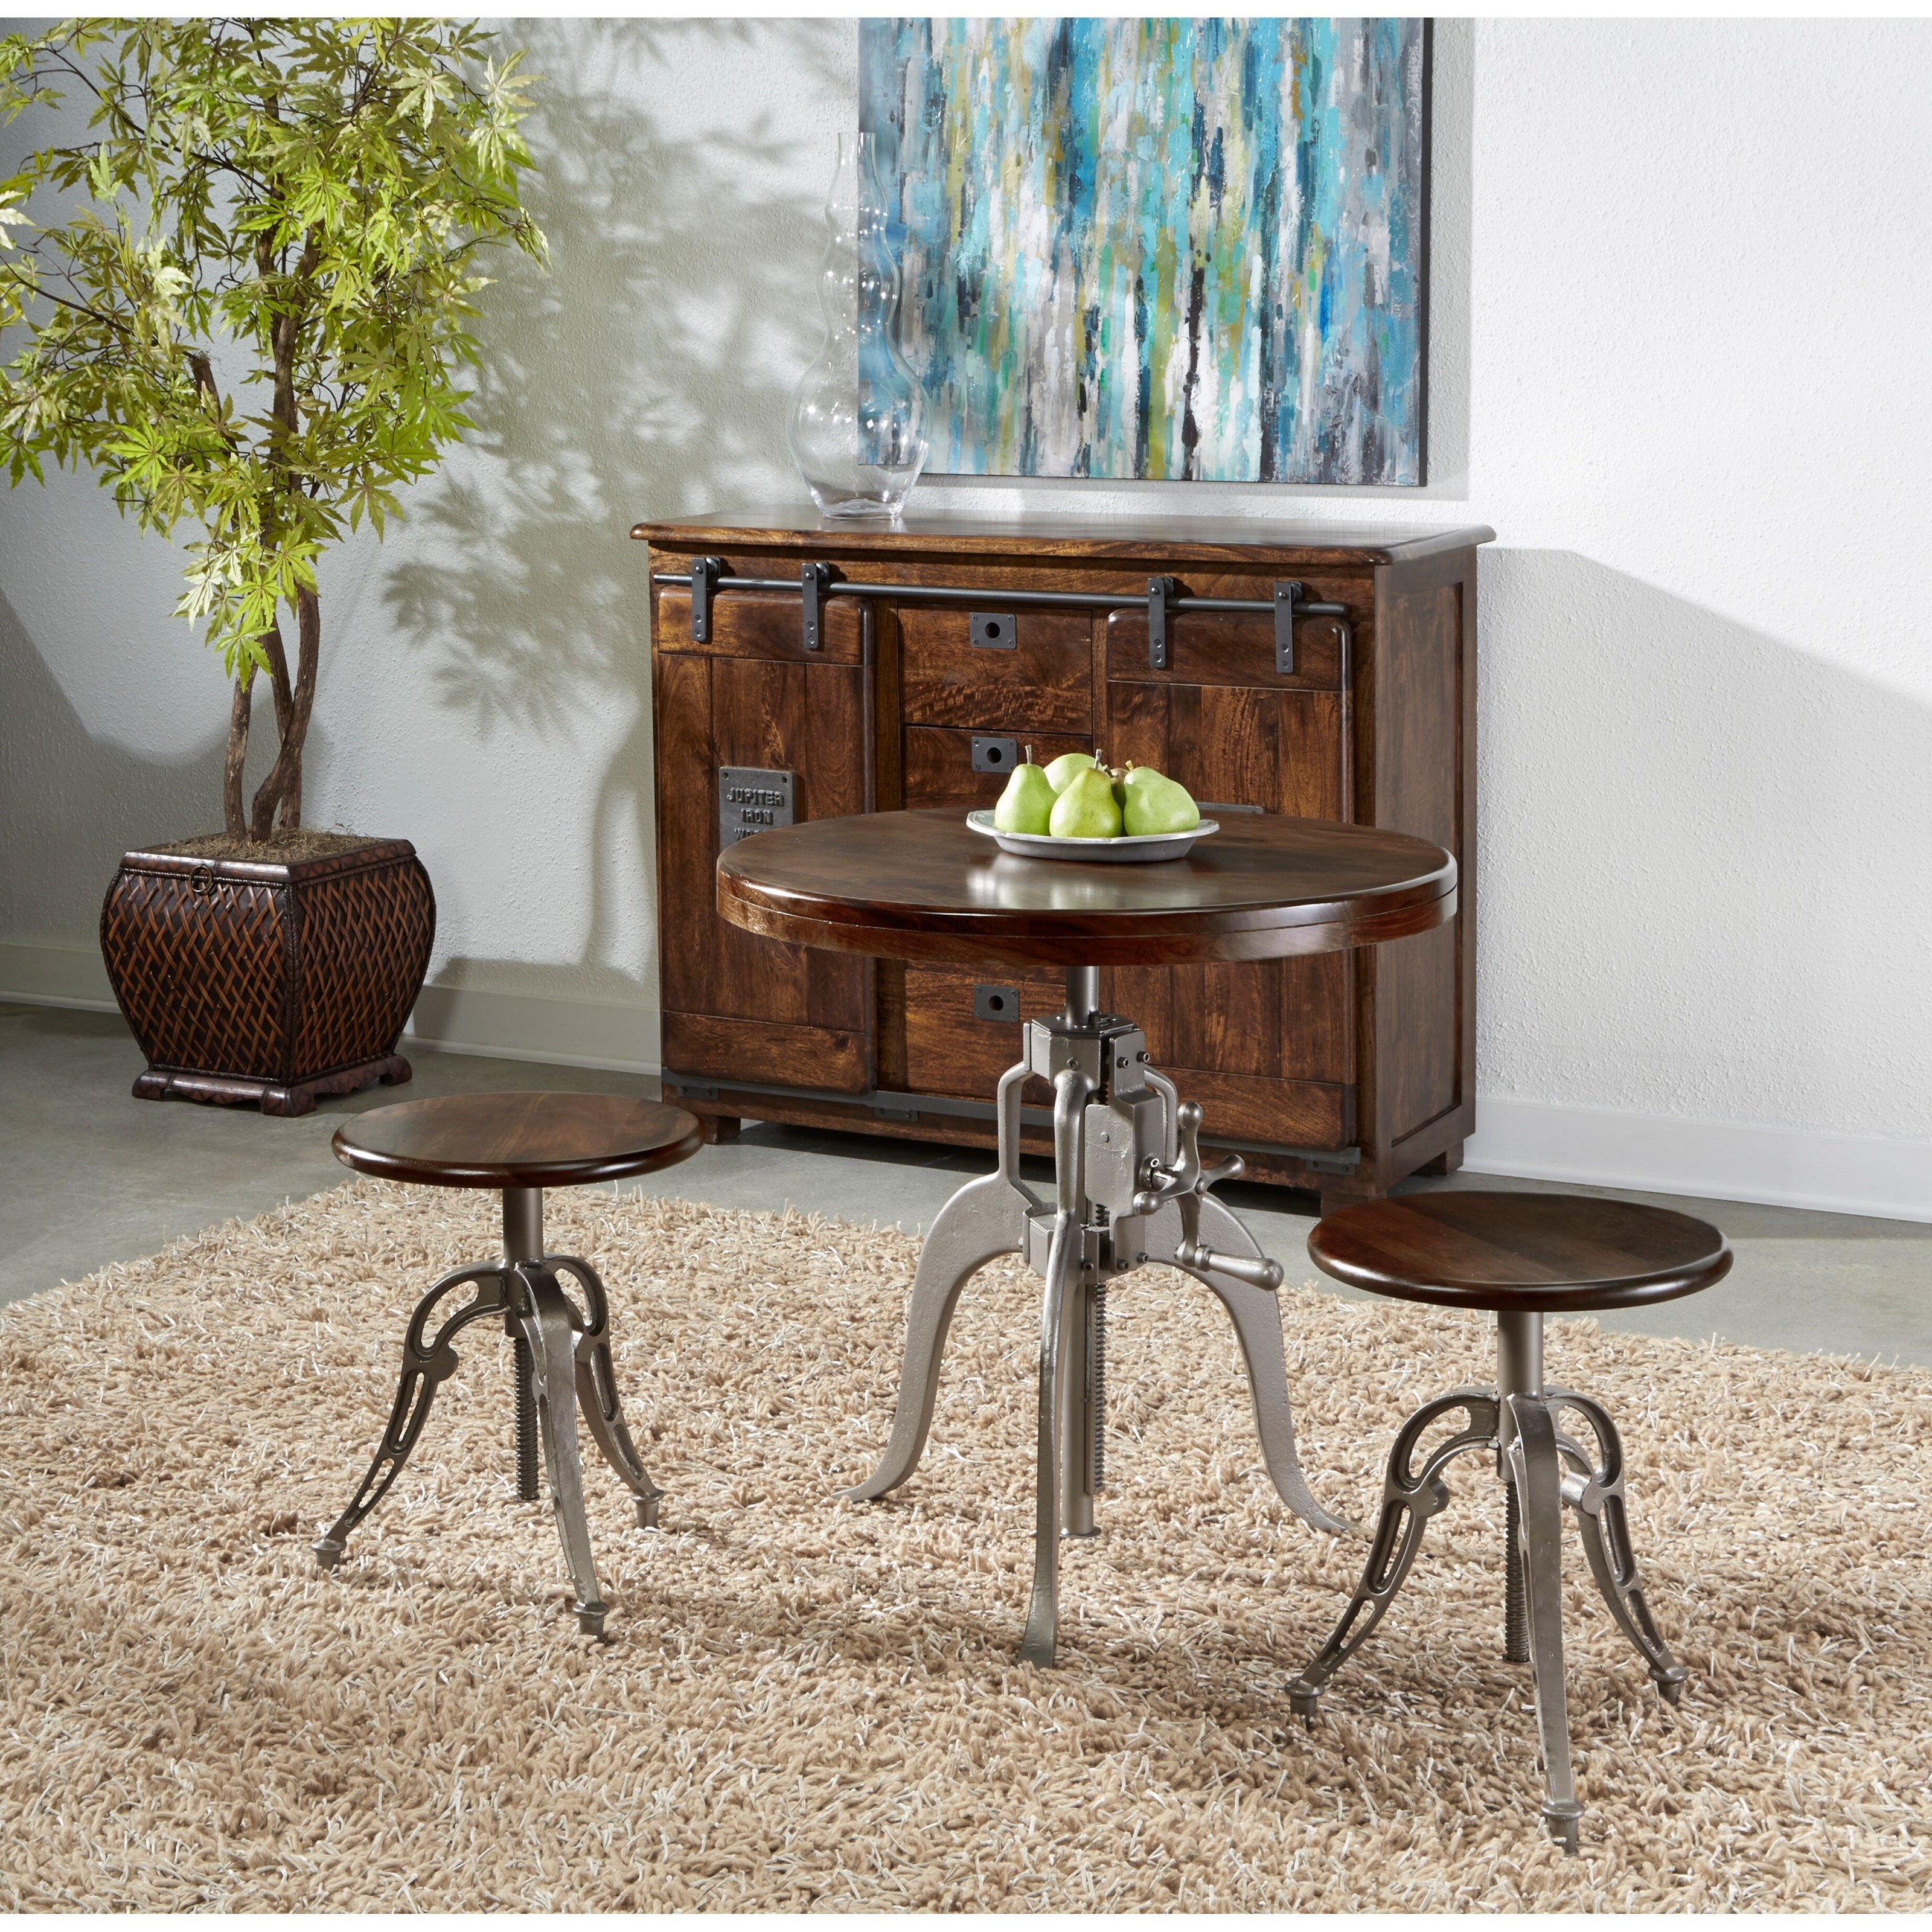 Bristol 3-Piece Adjustable Pub Table and Chair Set by Coast to Coast Imports at Baer's Furniture